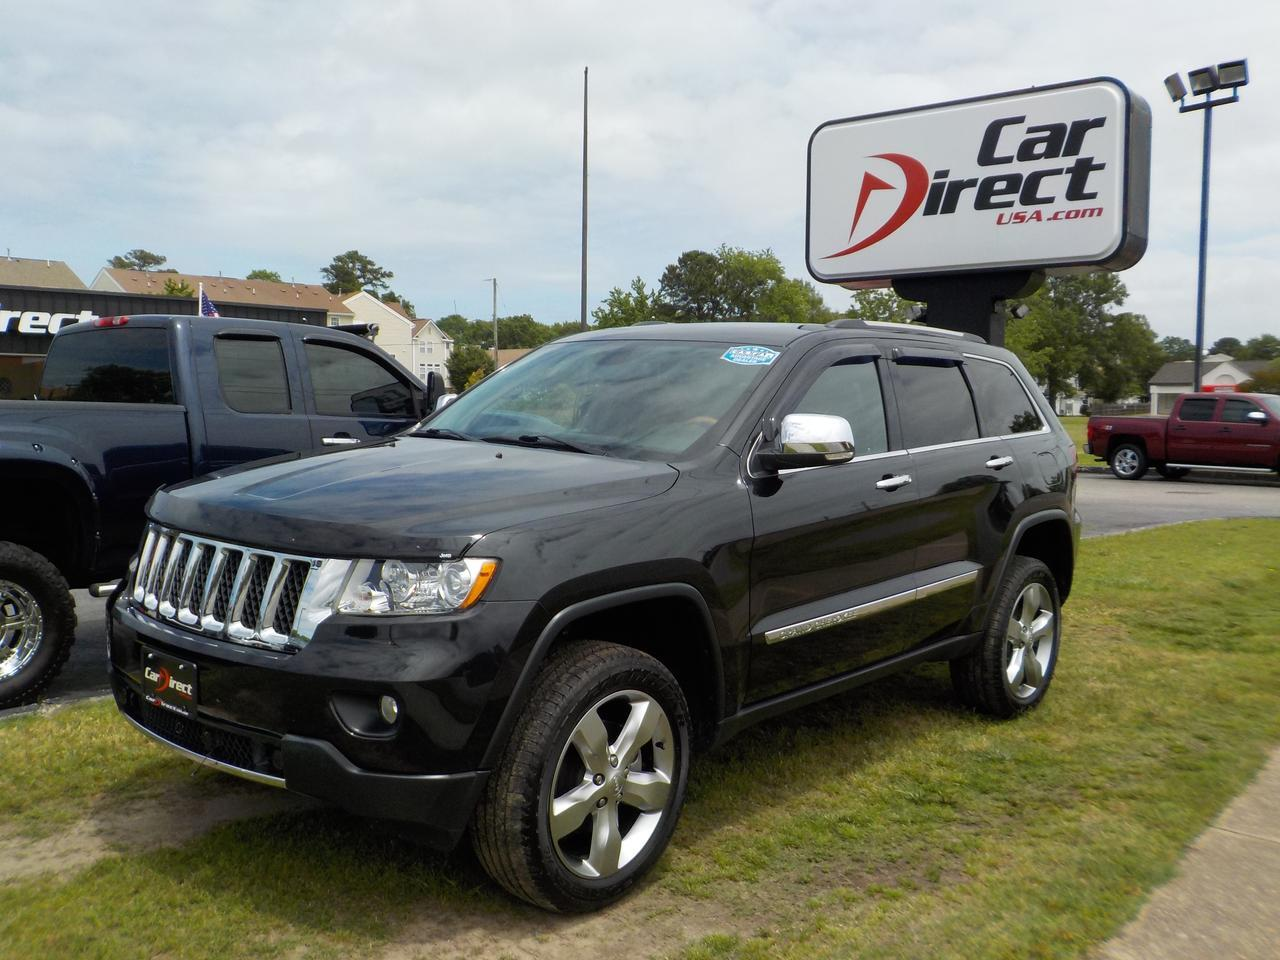 2013 JEEP GRAND CHEROKEE OVERLAND 4X4, NAVIGATION, BLUETOOTH WIRELESS, POWER LIFTGATE, PANO ROOF, TOW, REMOTE START! Virginia Beach VA